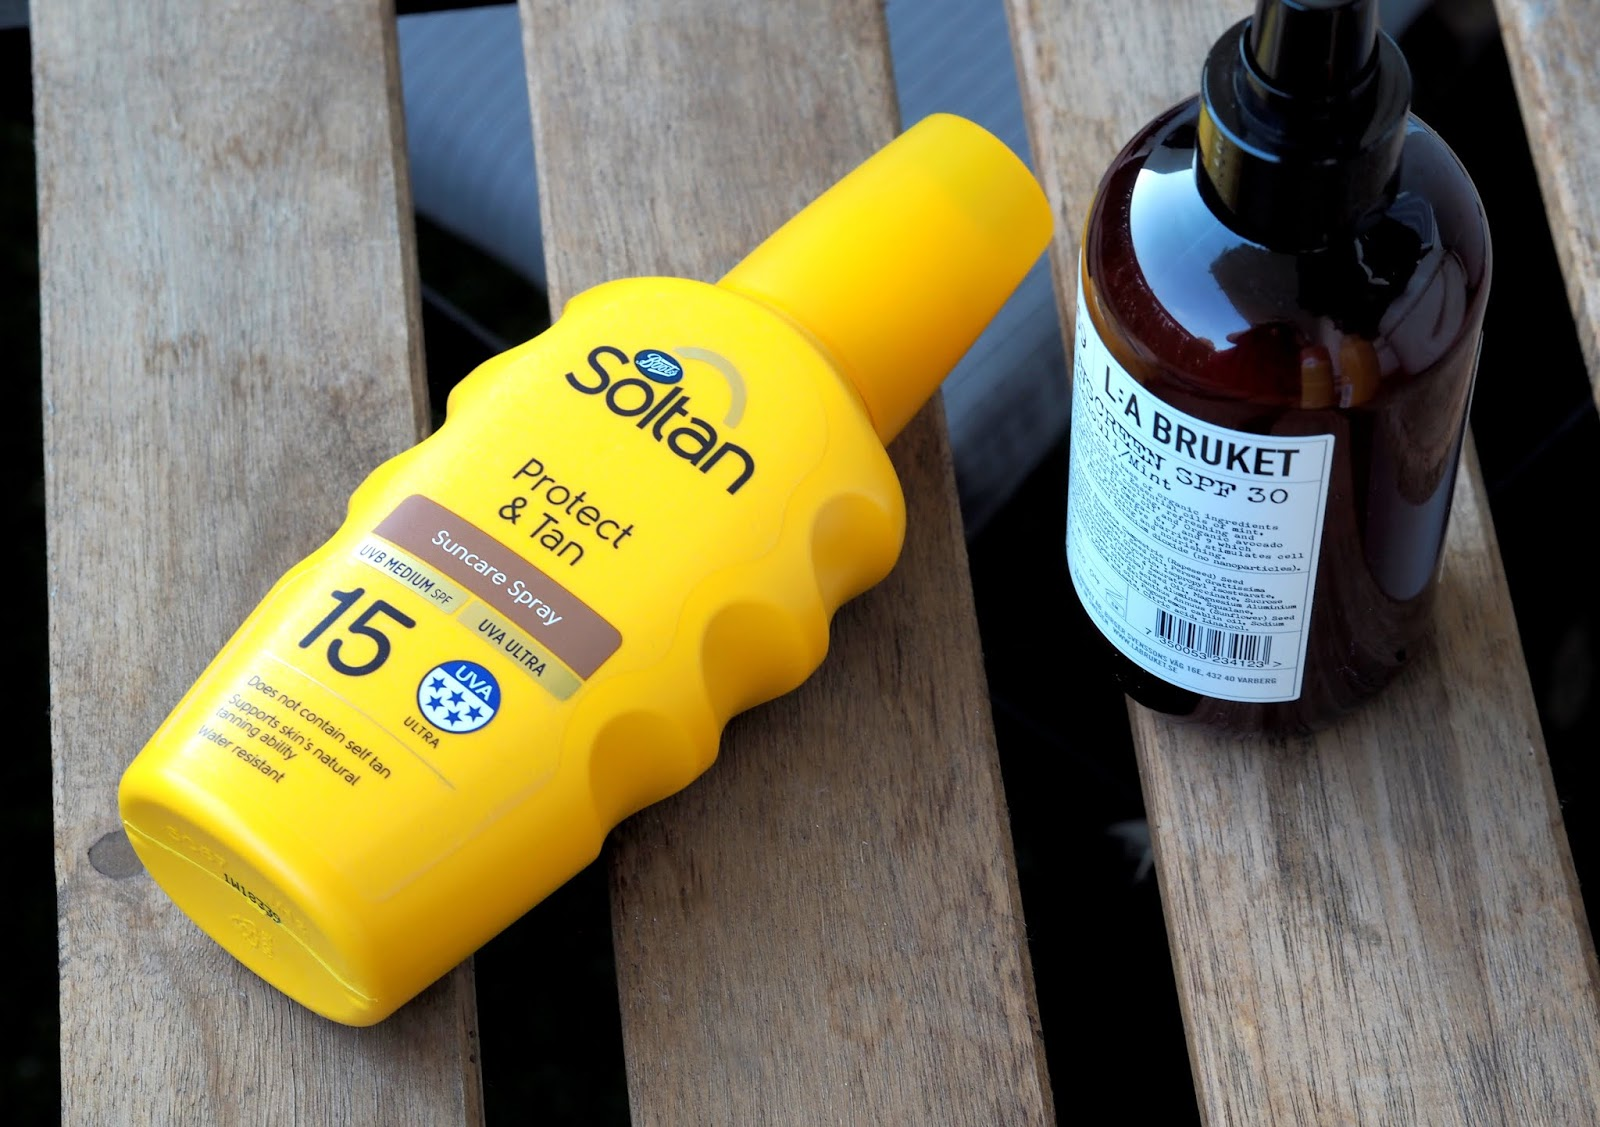 Soltan-Protect-and-Tan-Spray-SPF15-review